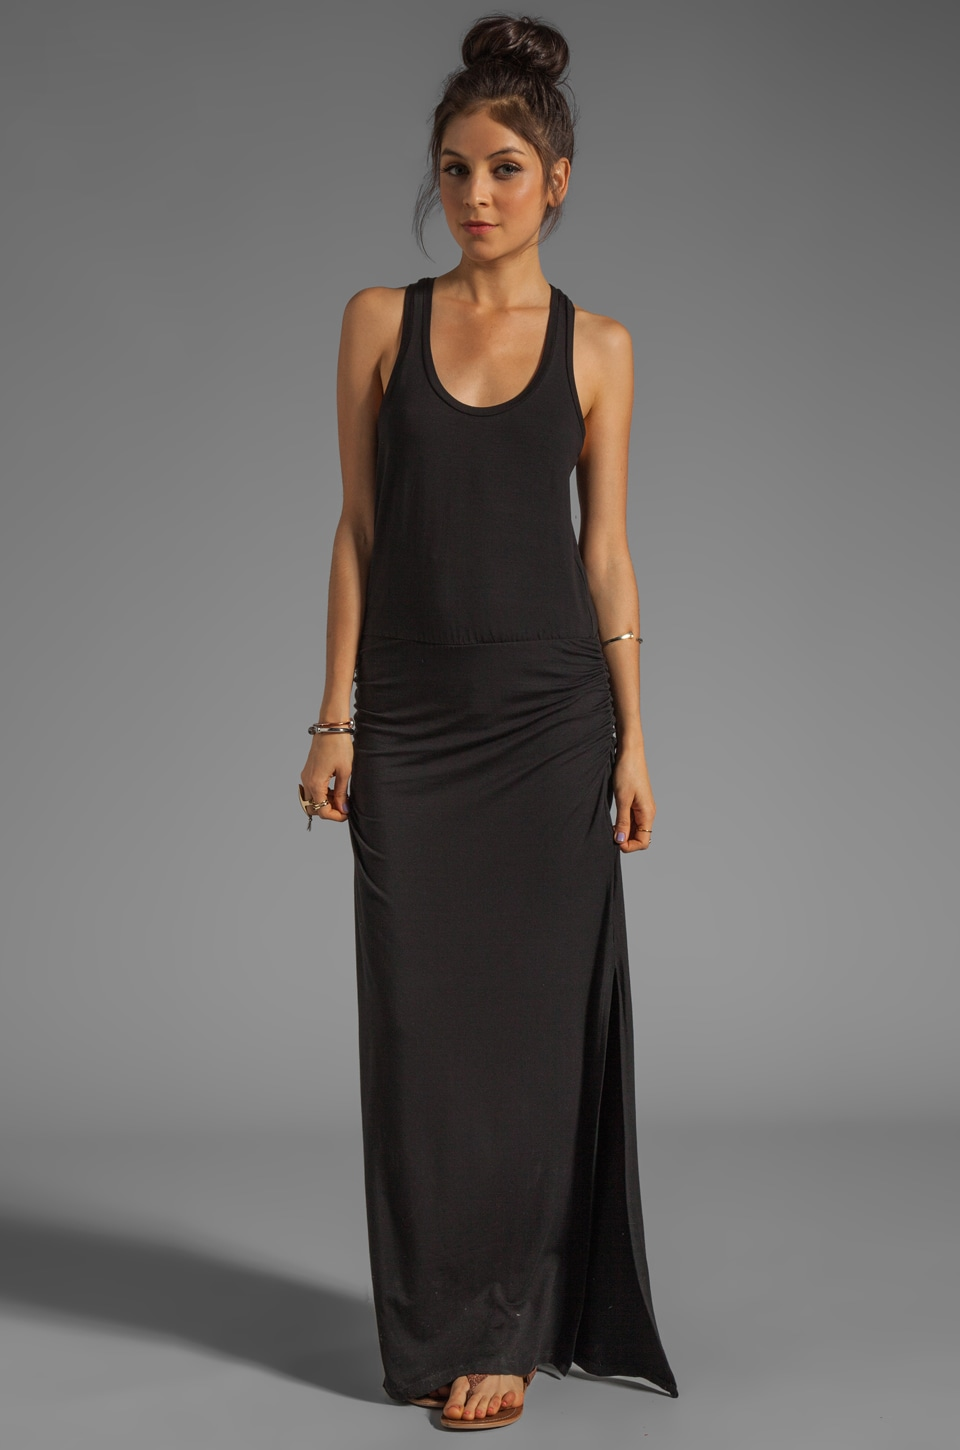 Splendid Maxi Dress in Black